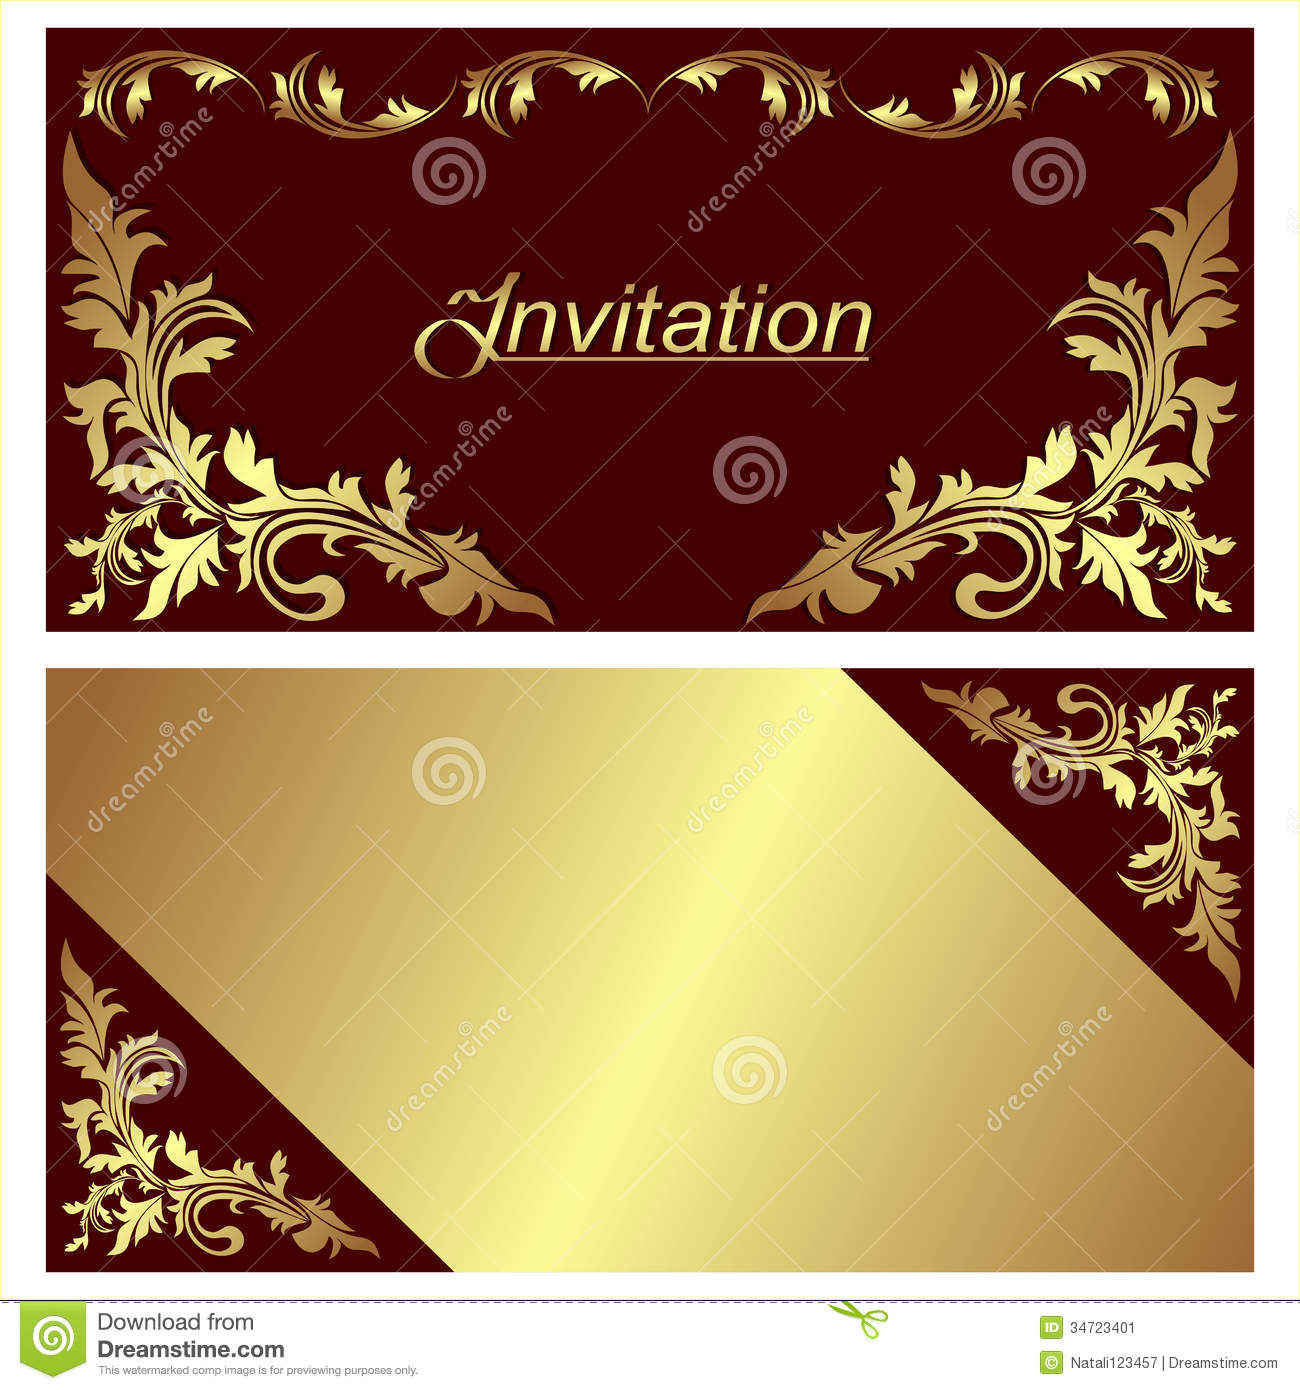 Design House Plans Online India Invitation Card Design With Golden Borders Stock Vector